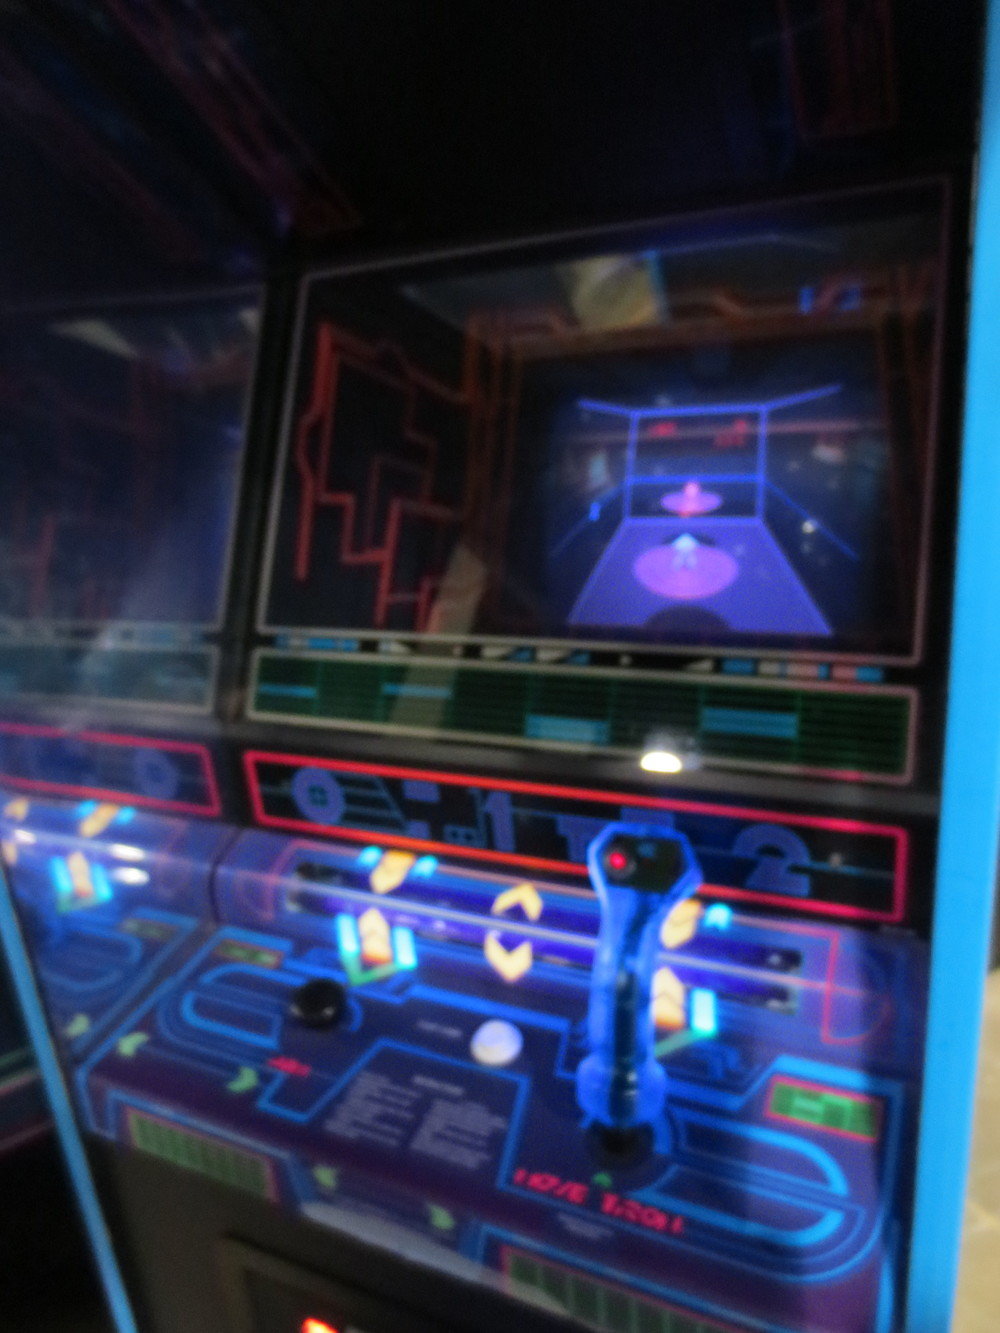 The Tron arcade game. Ultra fun and super sleek-looking.